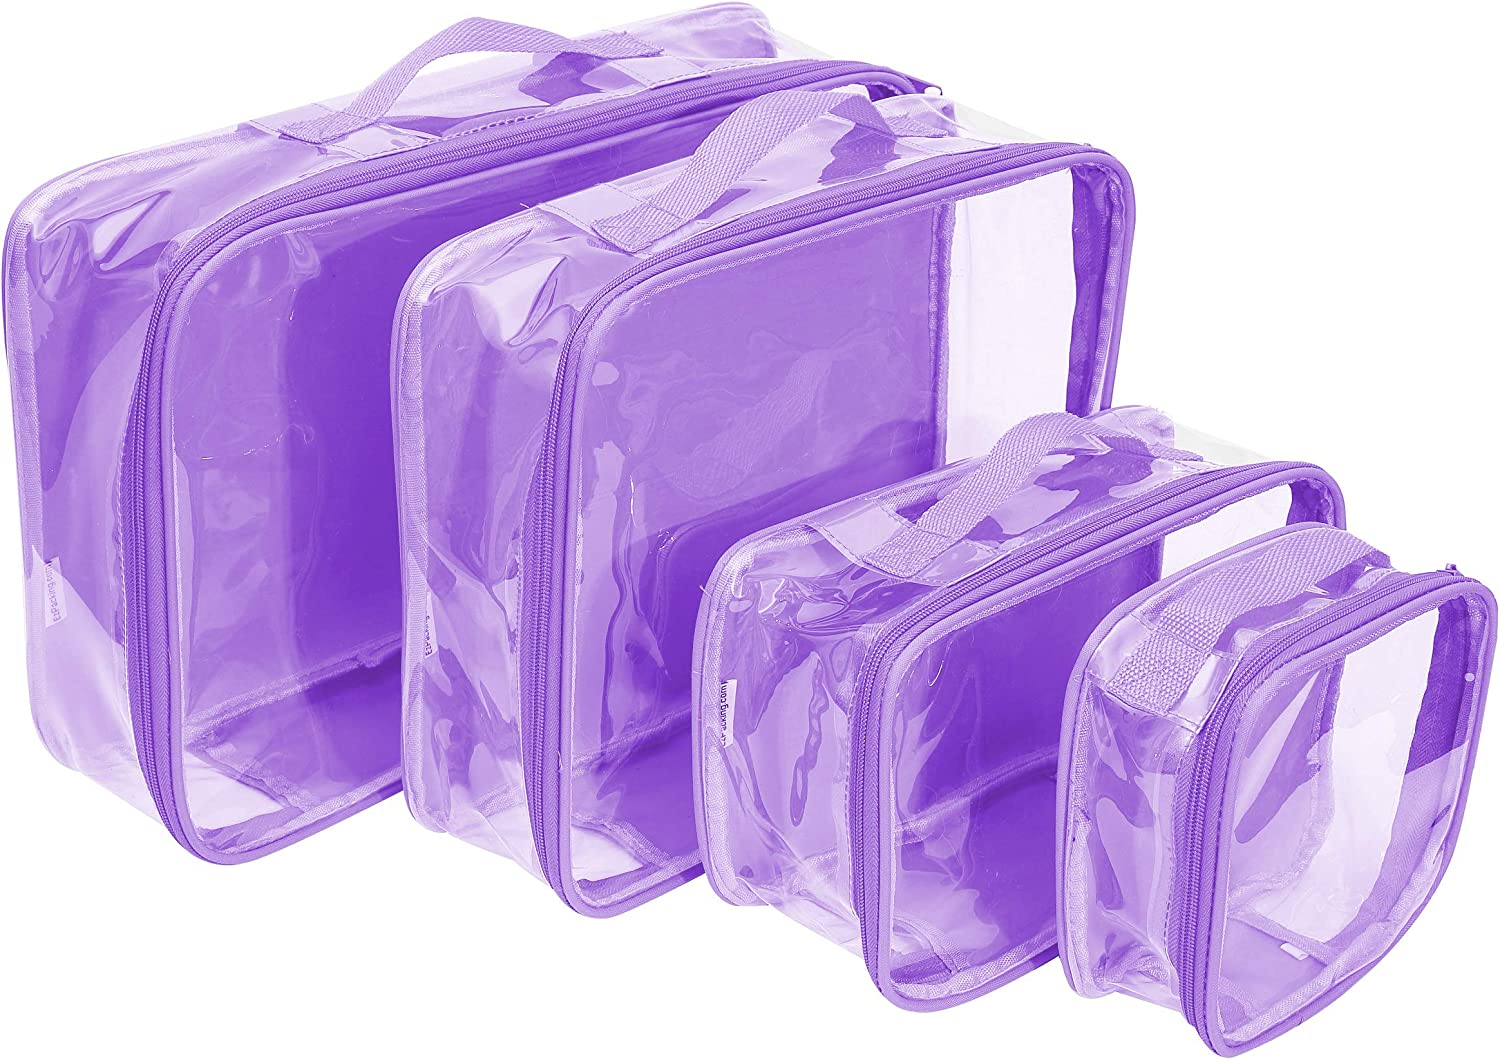 Clear Travel Packing Cubes Set of 4 for Carry On (XS, Small, Medium, Large) / See-Through Clothes Organizer Dividers for Suitcase/Transparent Vinyl PVC Cell Pouches for Luggage (Lilac)